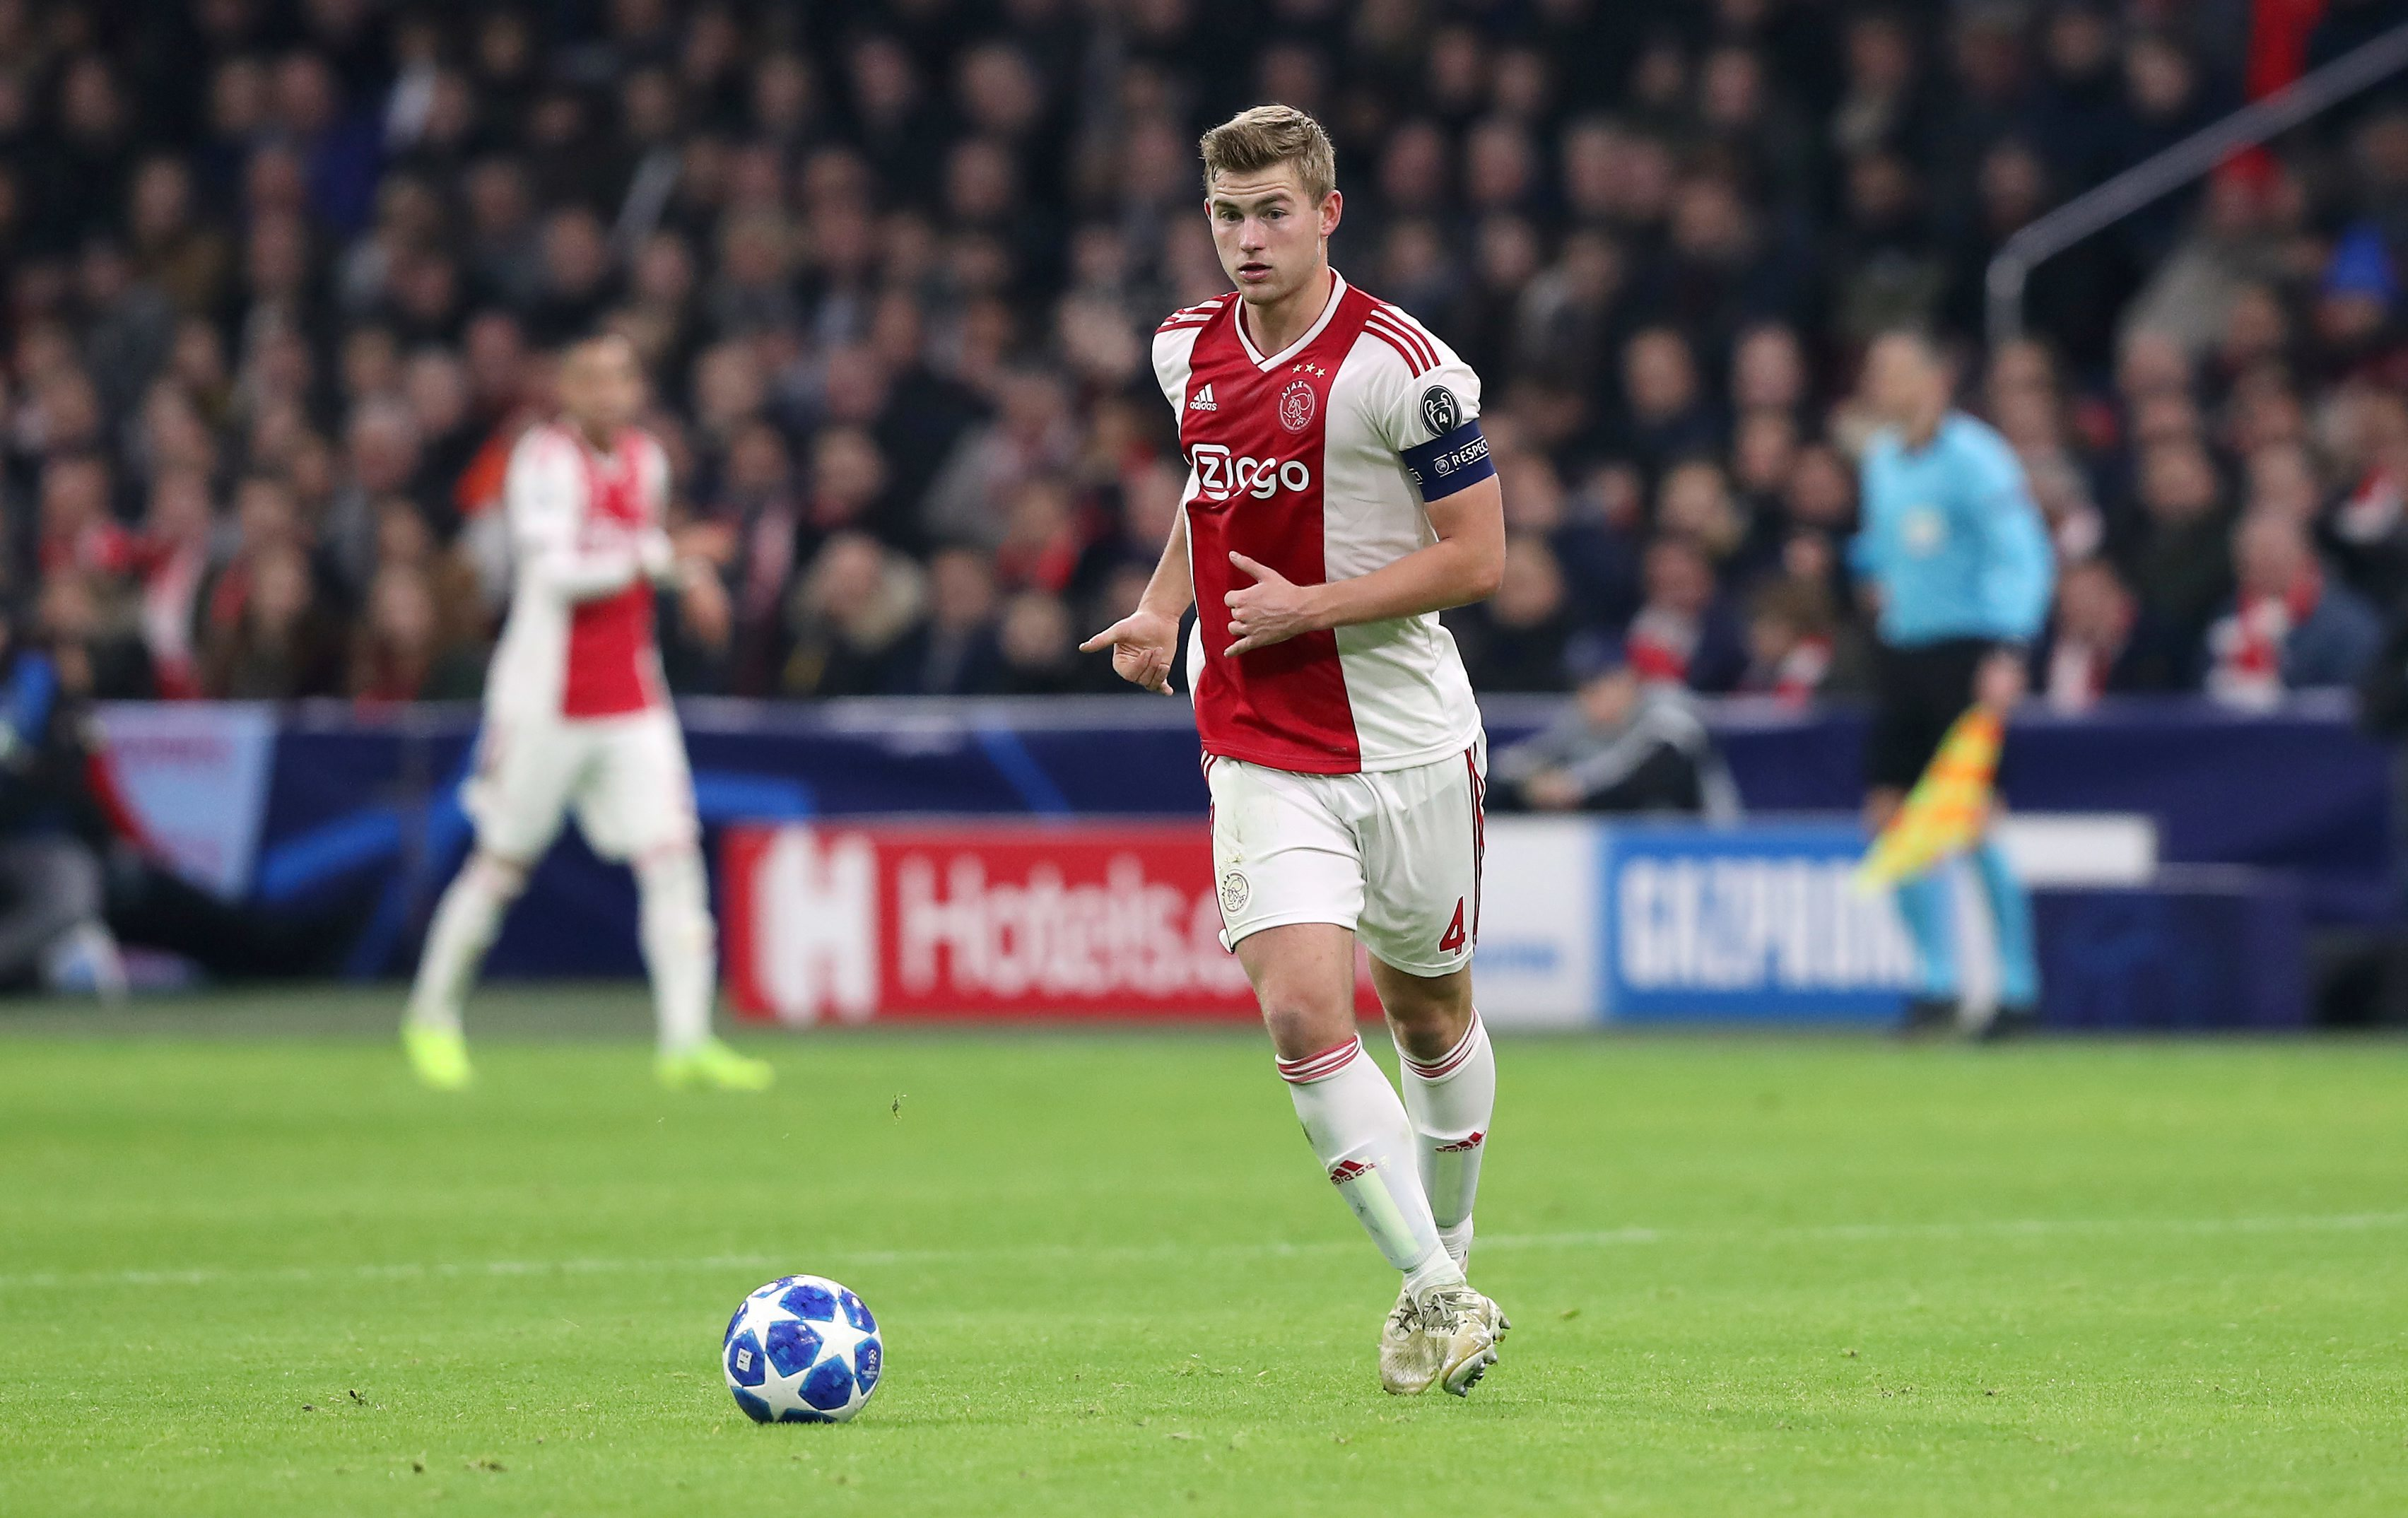 Man Utd De Ligt offer still on table